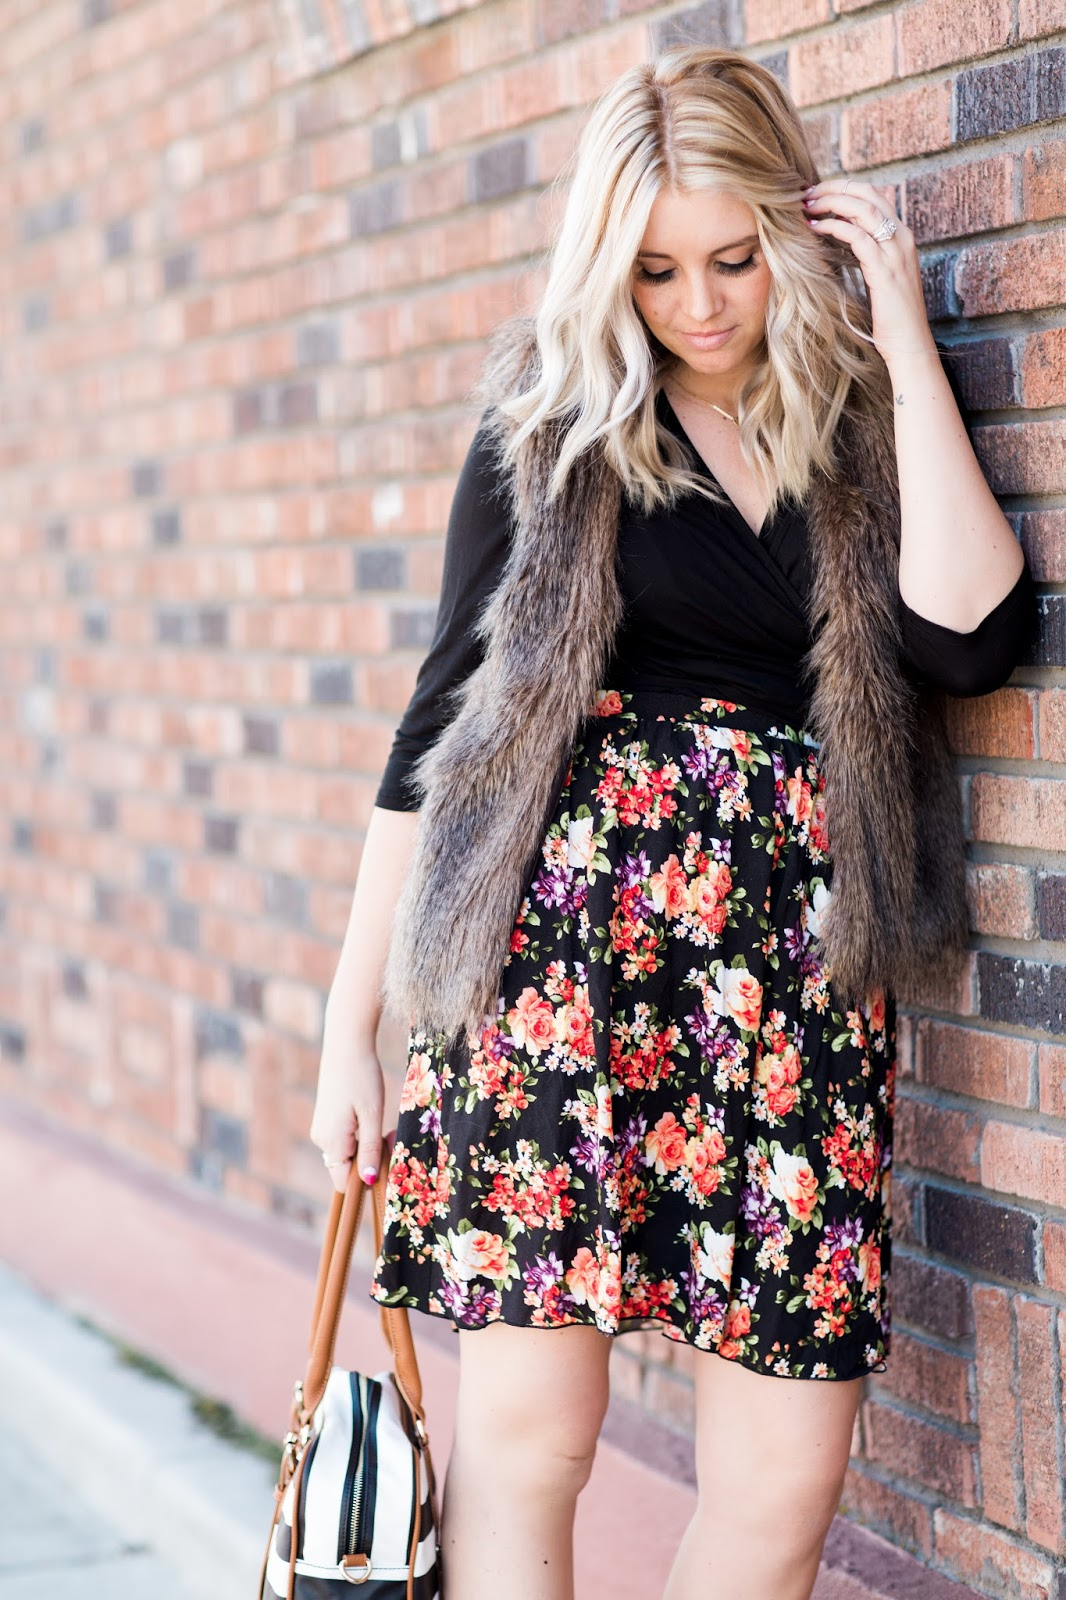 Udderly Hot Mama, Fur Vest, Floral Skirt, Modest Fashion Blogger